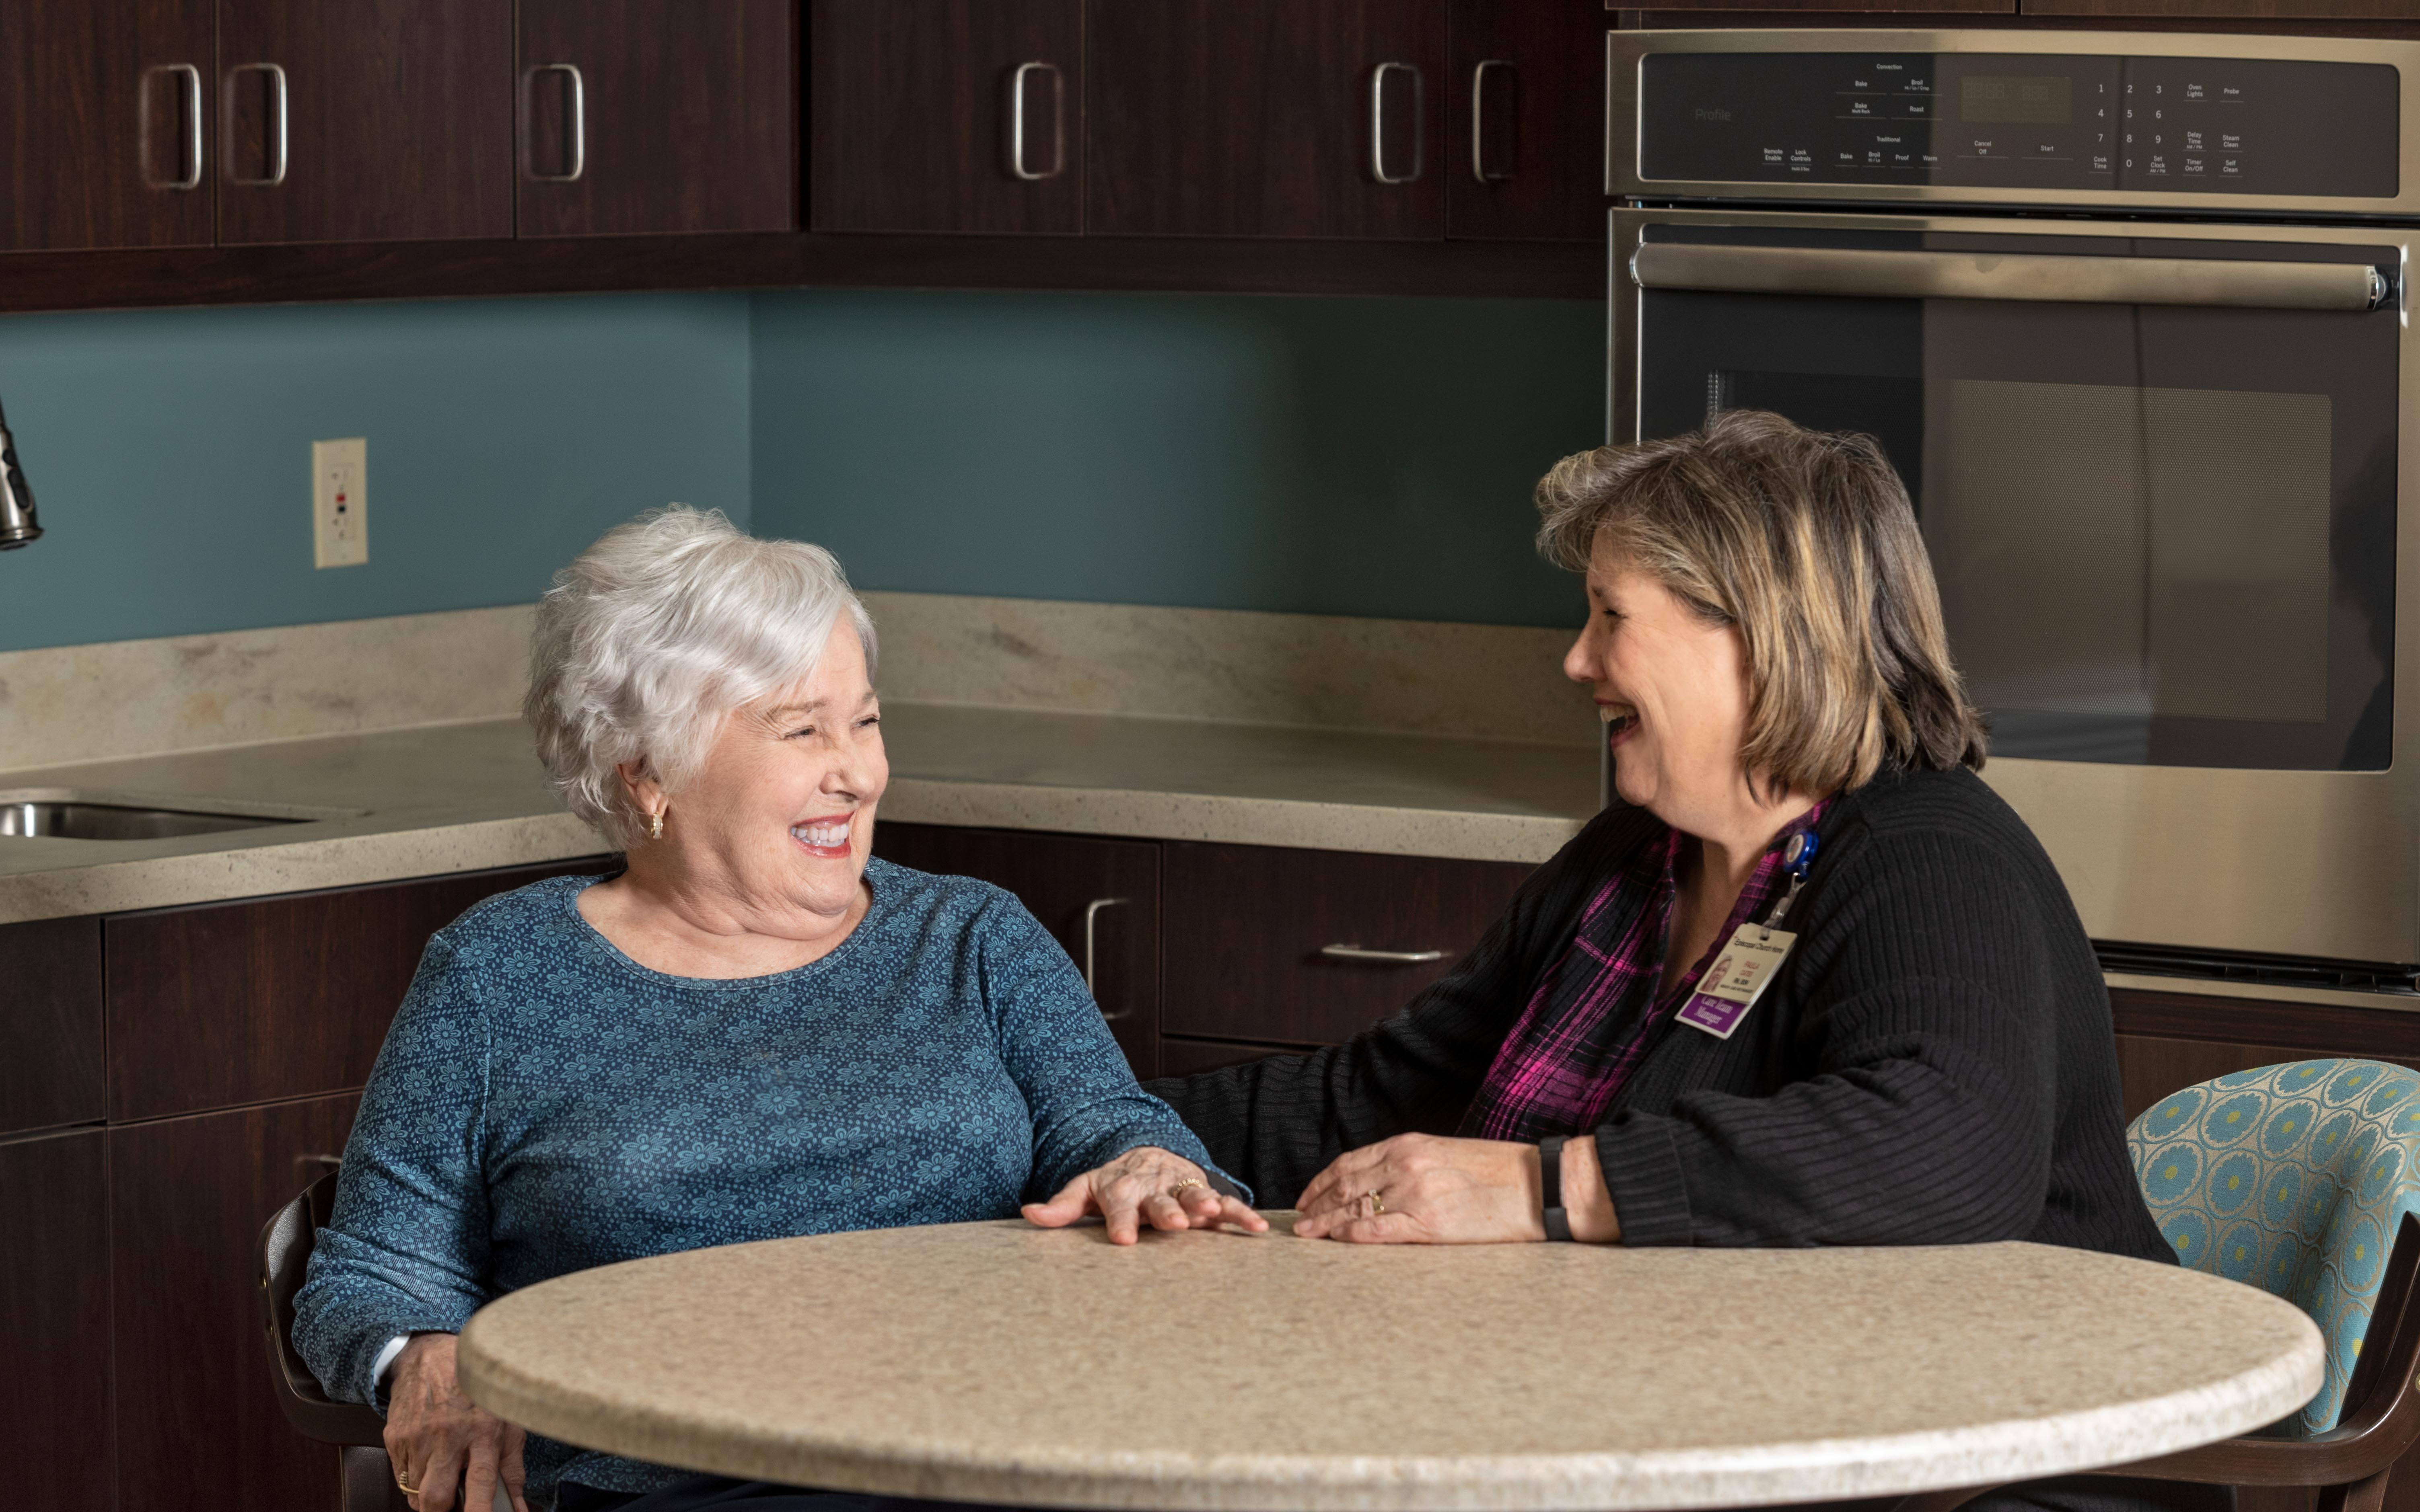 Common Questions About Memory Care Answered by ECH's Care Team Manager, Paula Cates